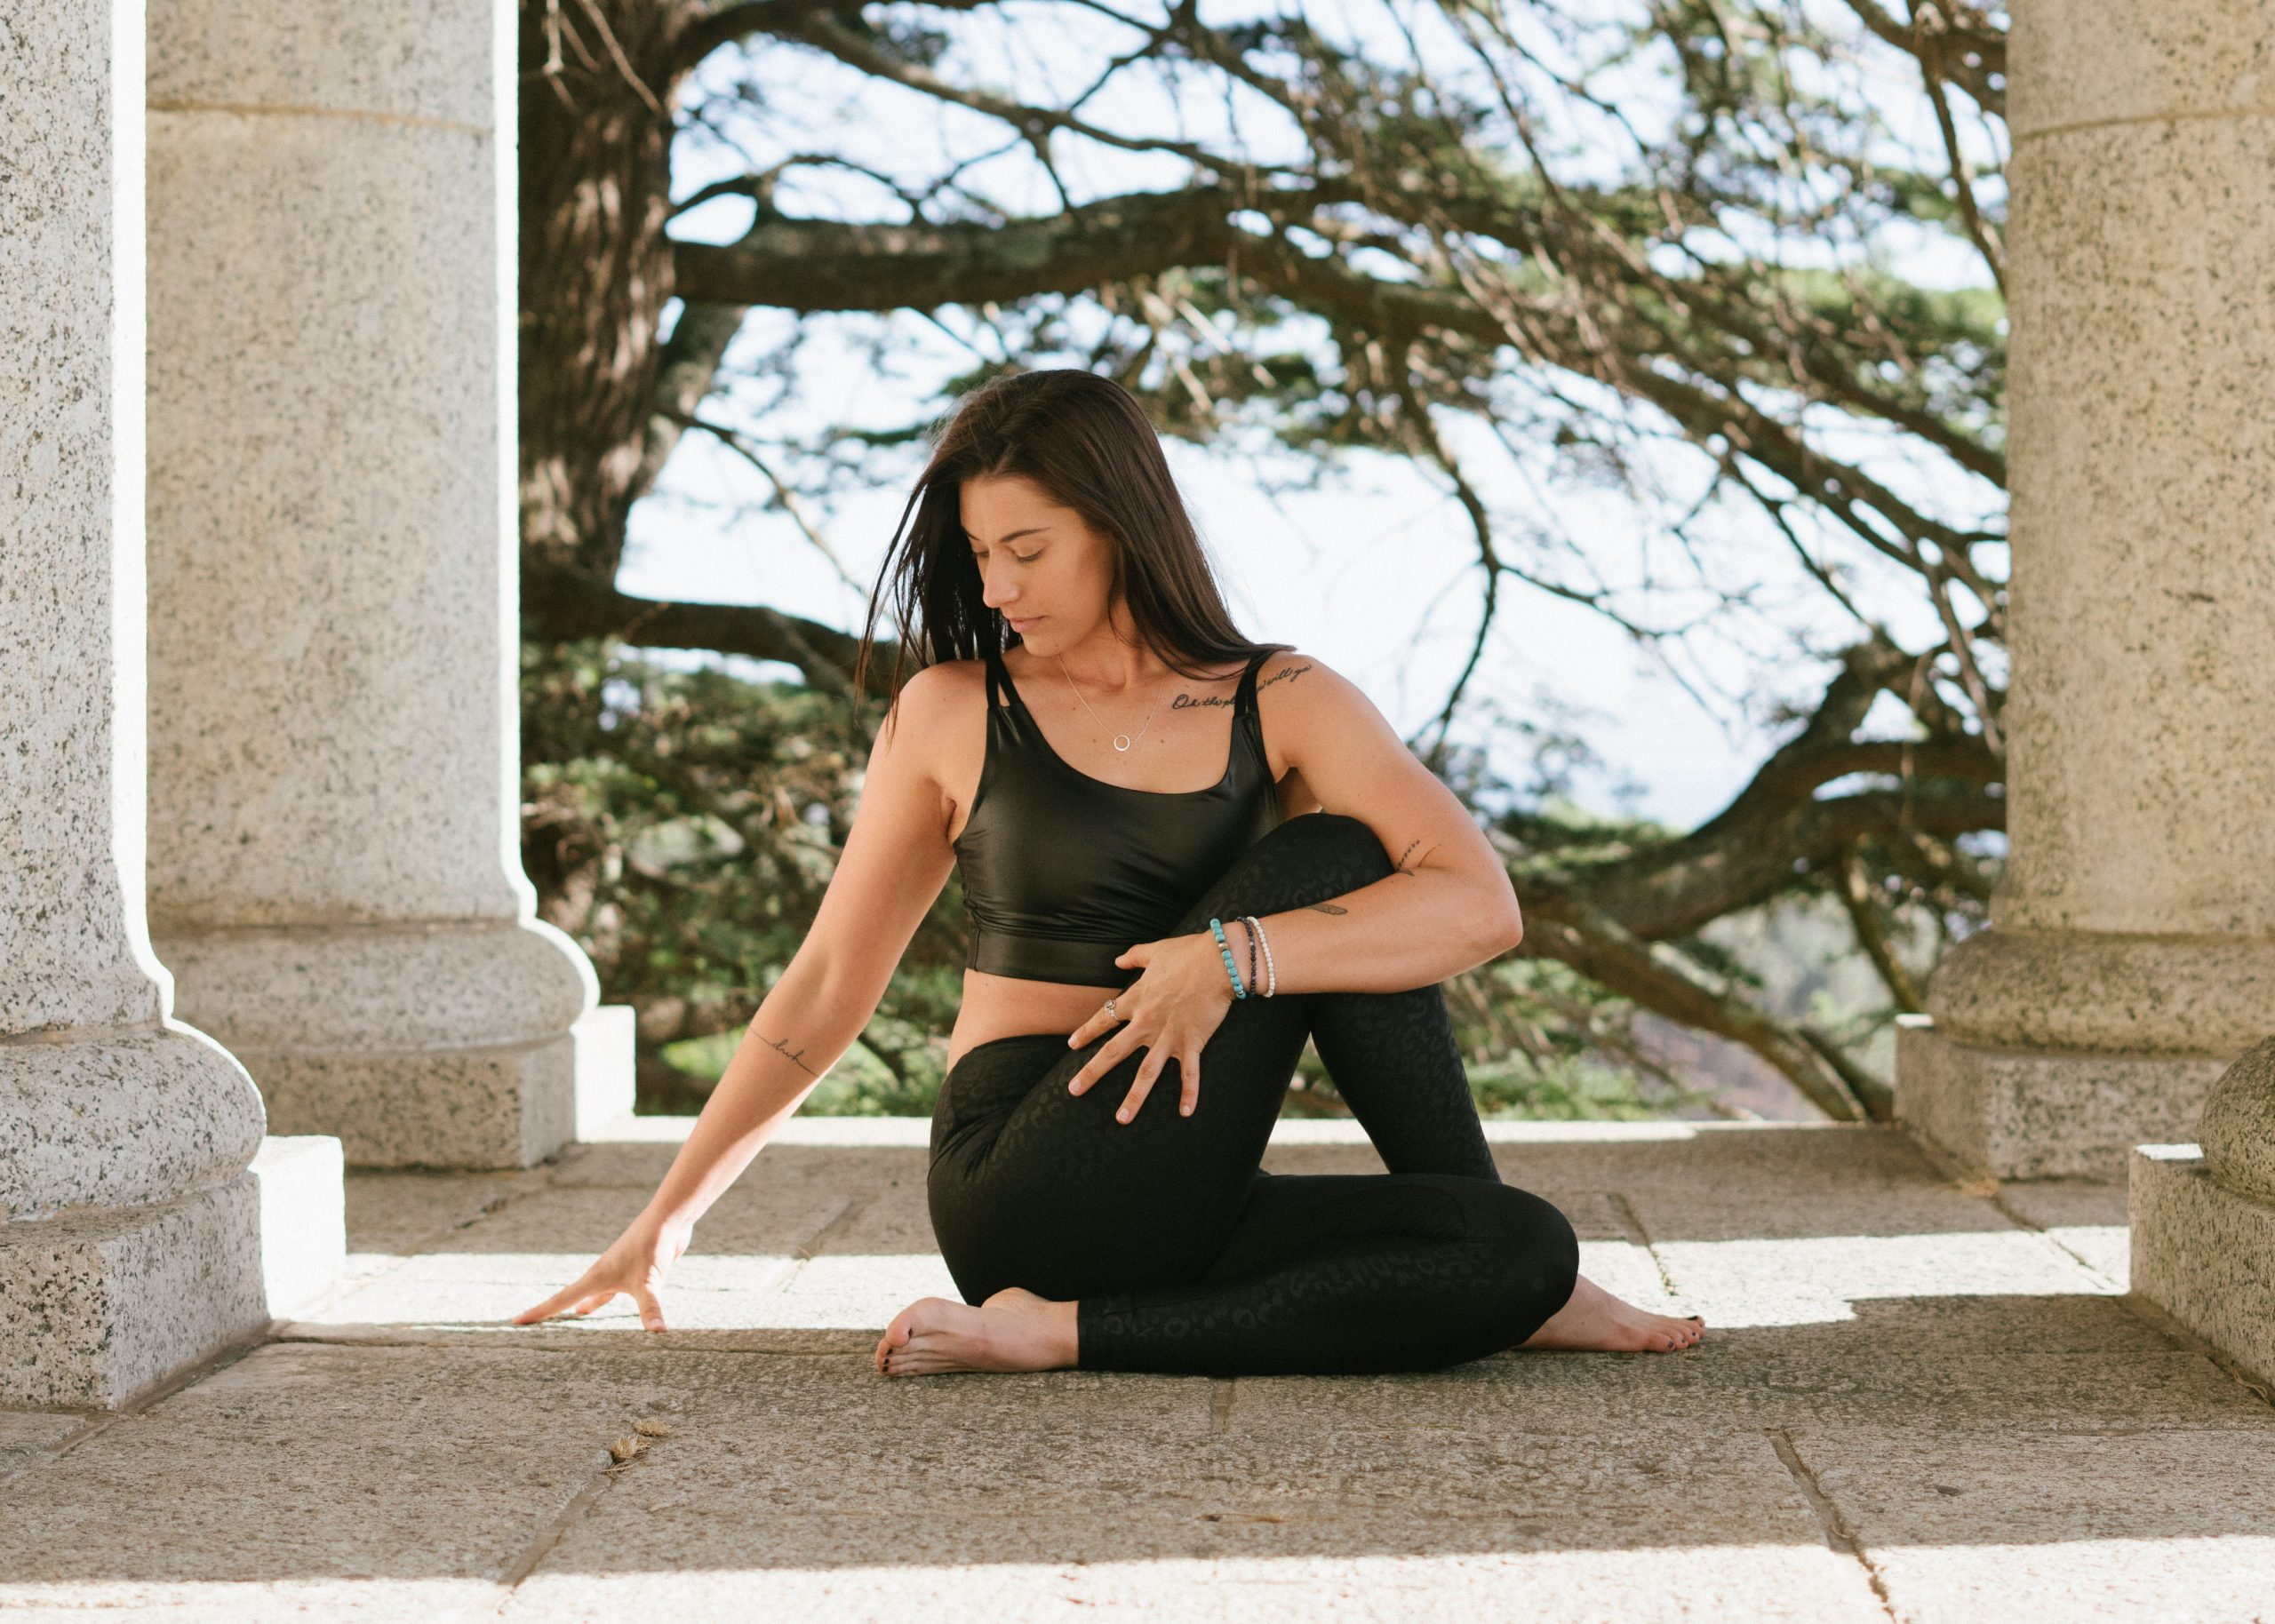 19 Yoga Facts – Types of Yoga